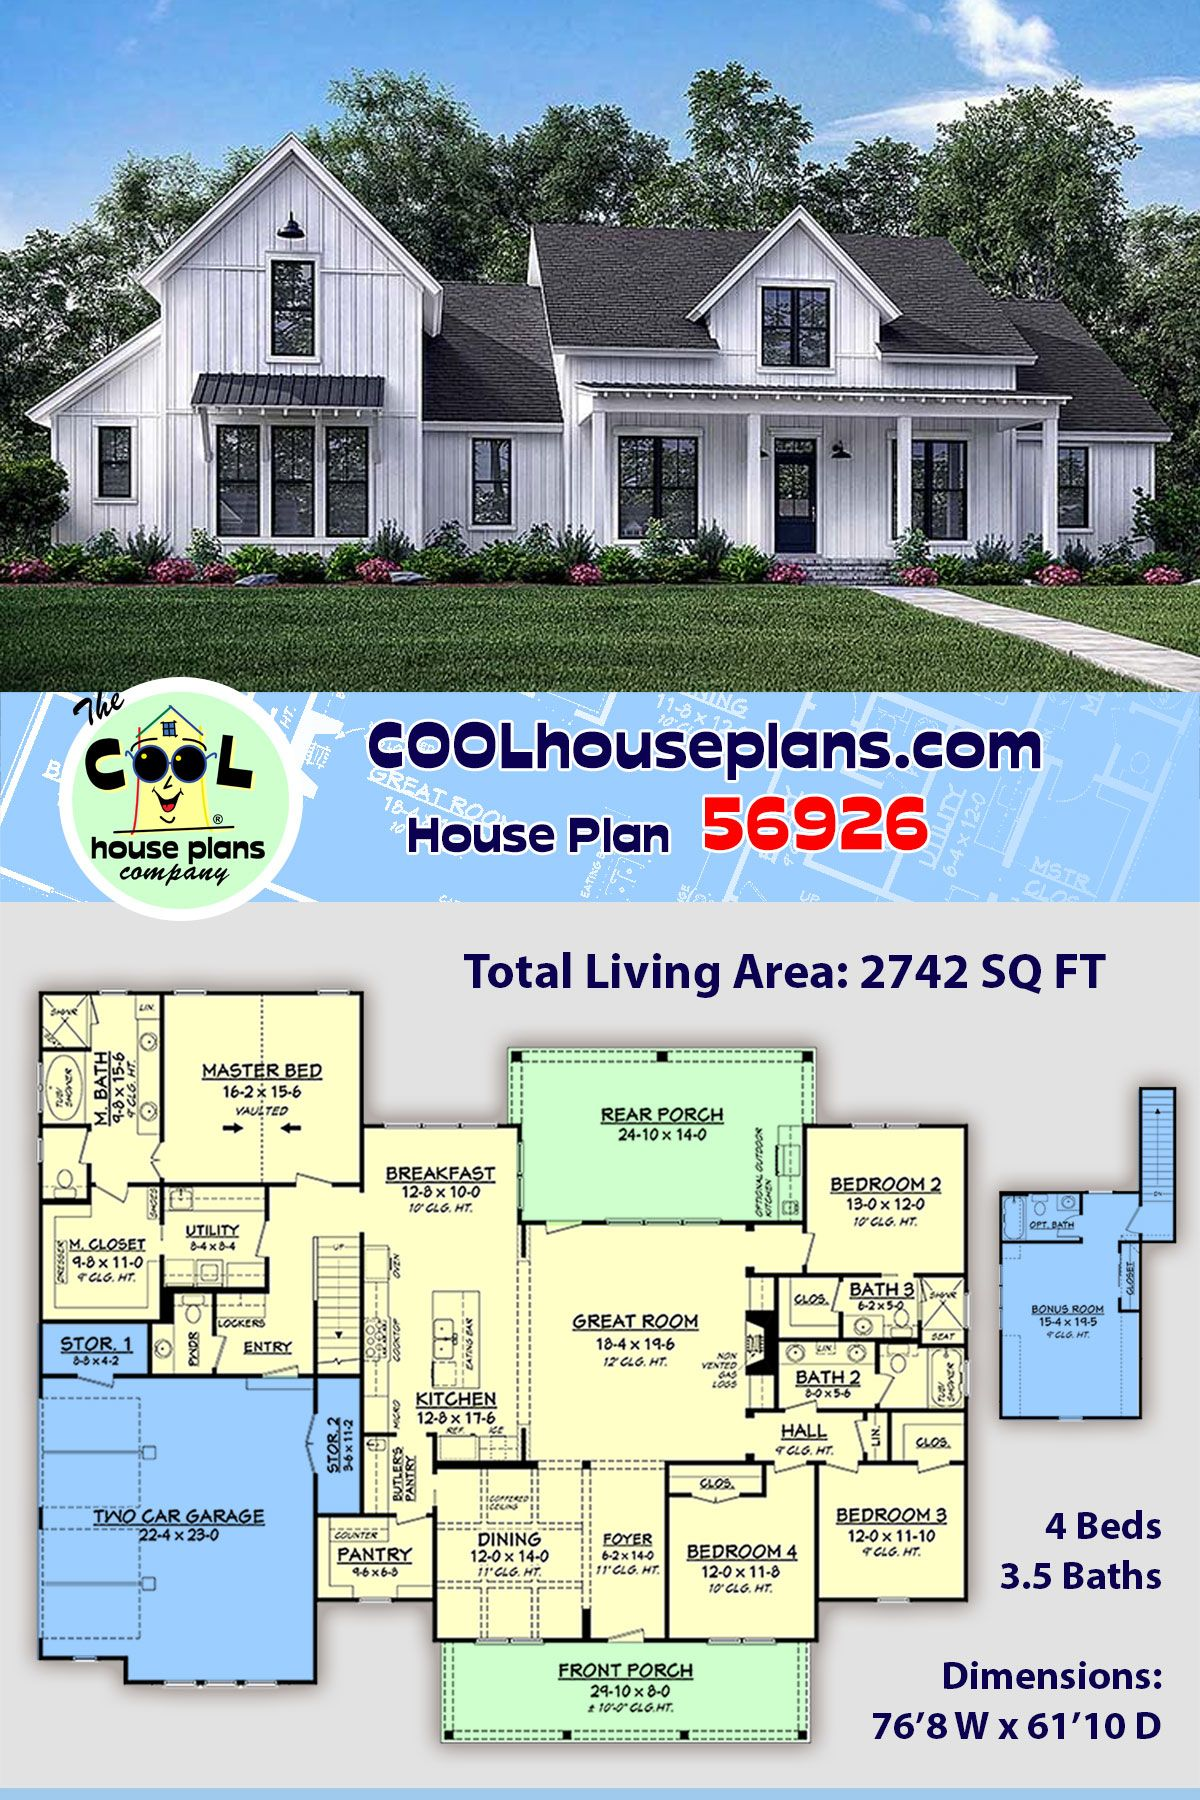 Southern Style House Plan 56926 With 4 Bed 4 Bath 2 Car Garage House Plans Brick Exterior House Metal House Plans